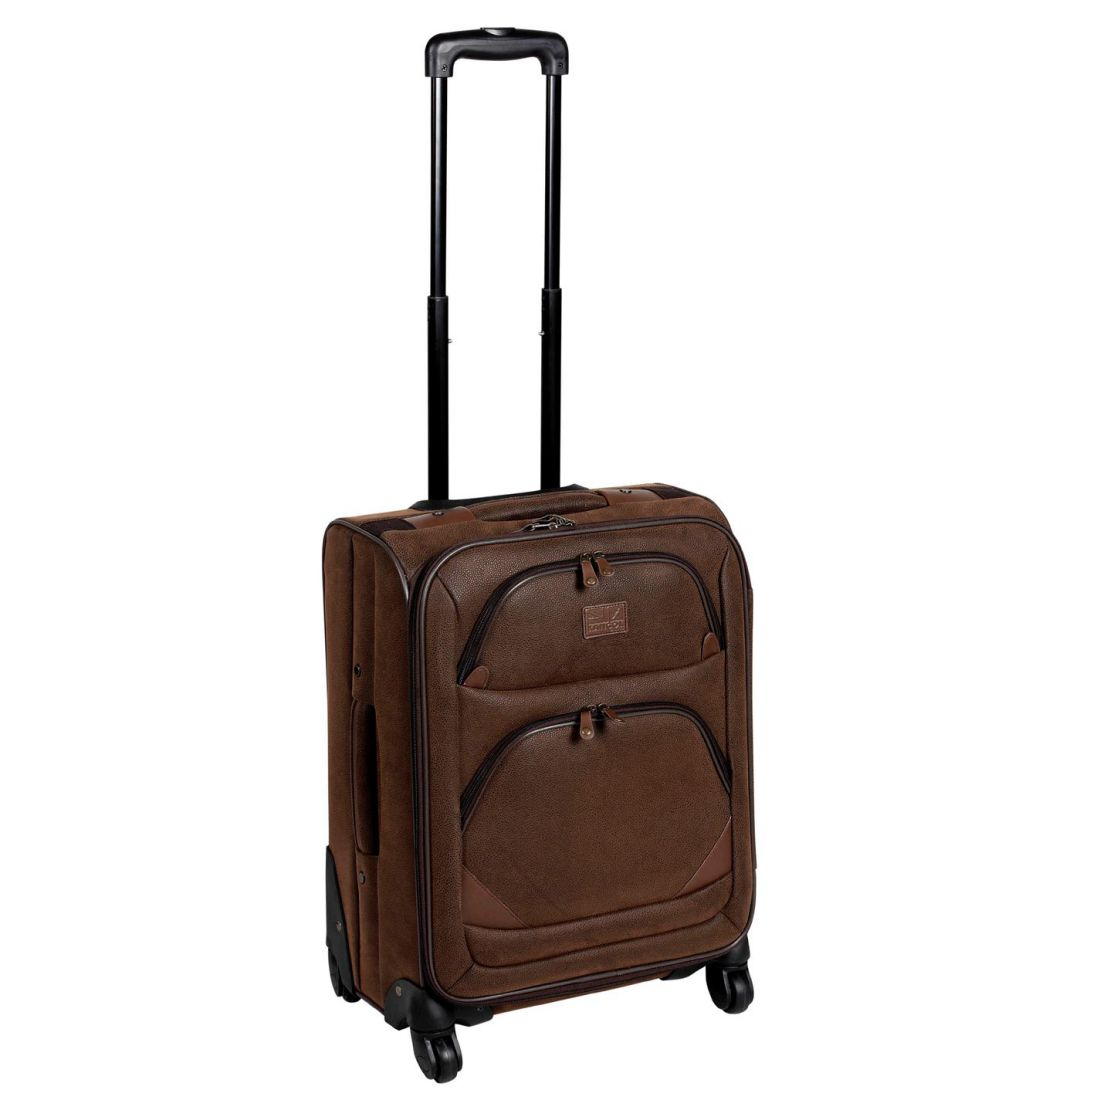 0c64dd7f4824 Details about Kangol 4 Wheel Suitcase Extending Handle Luggage Travel  Accessories